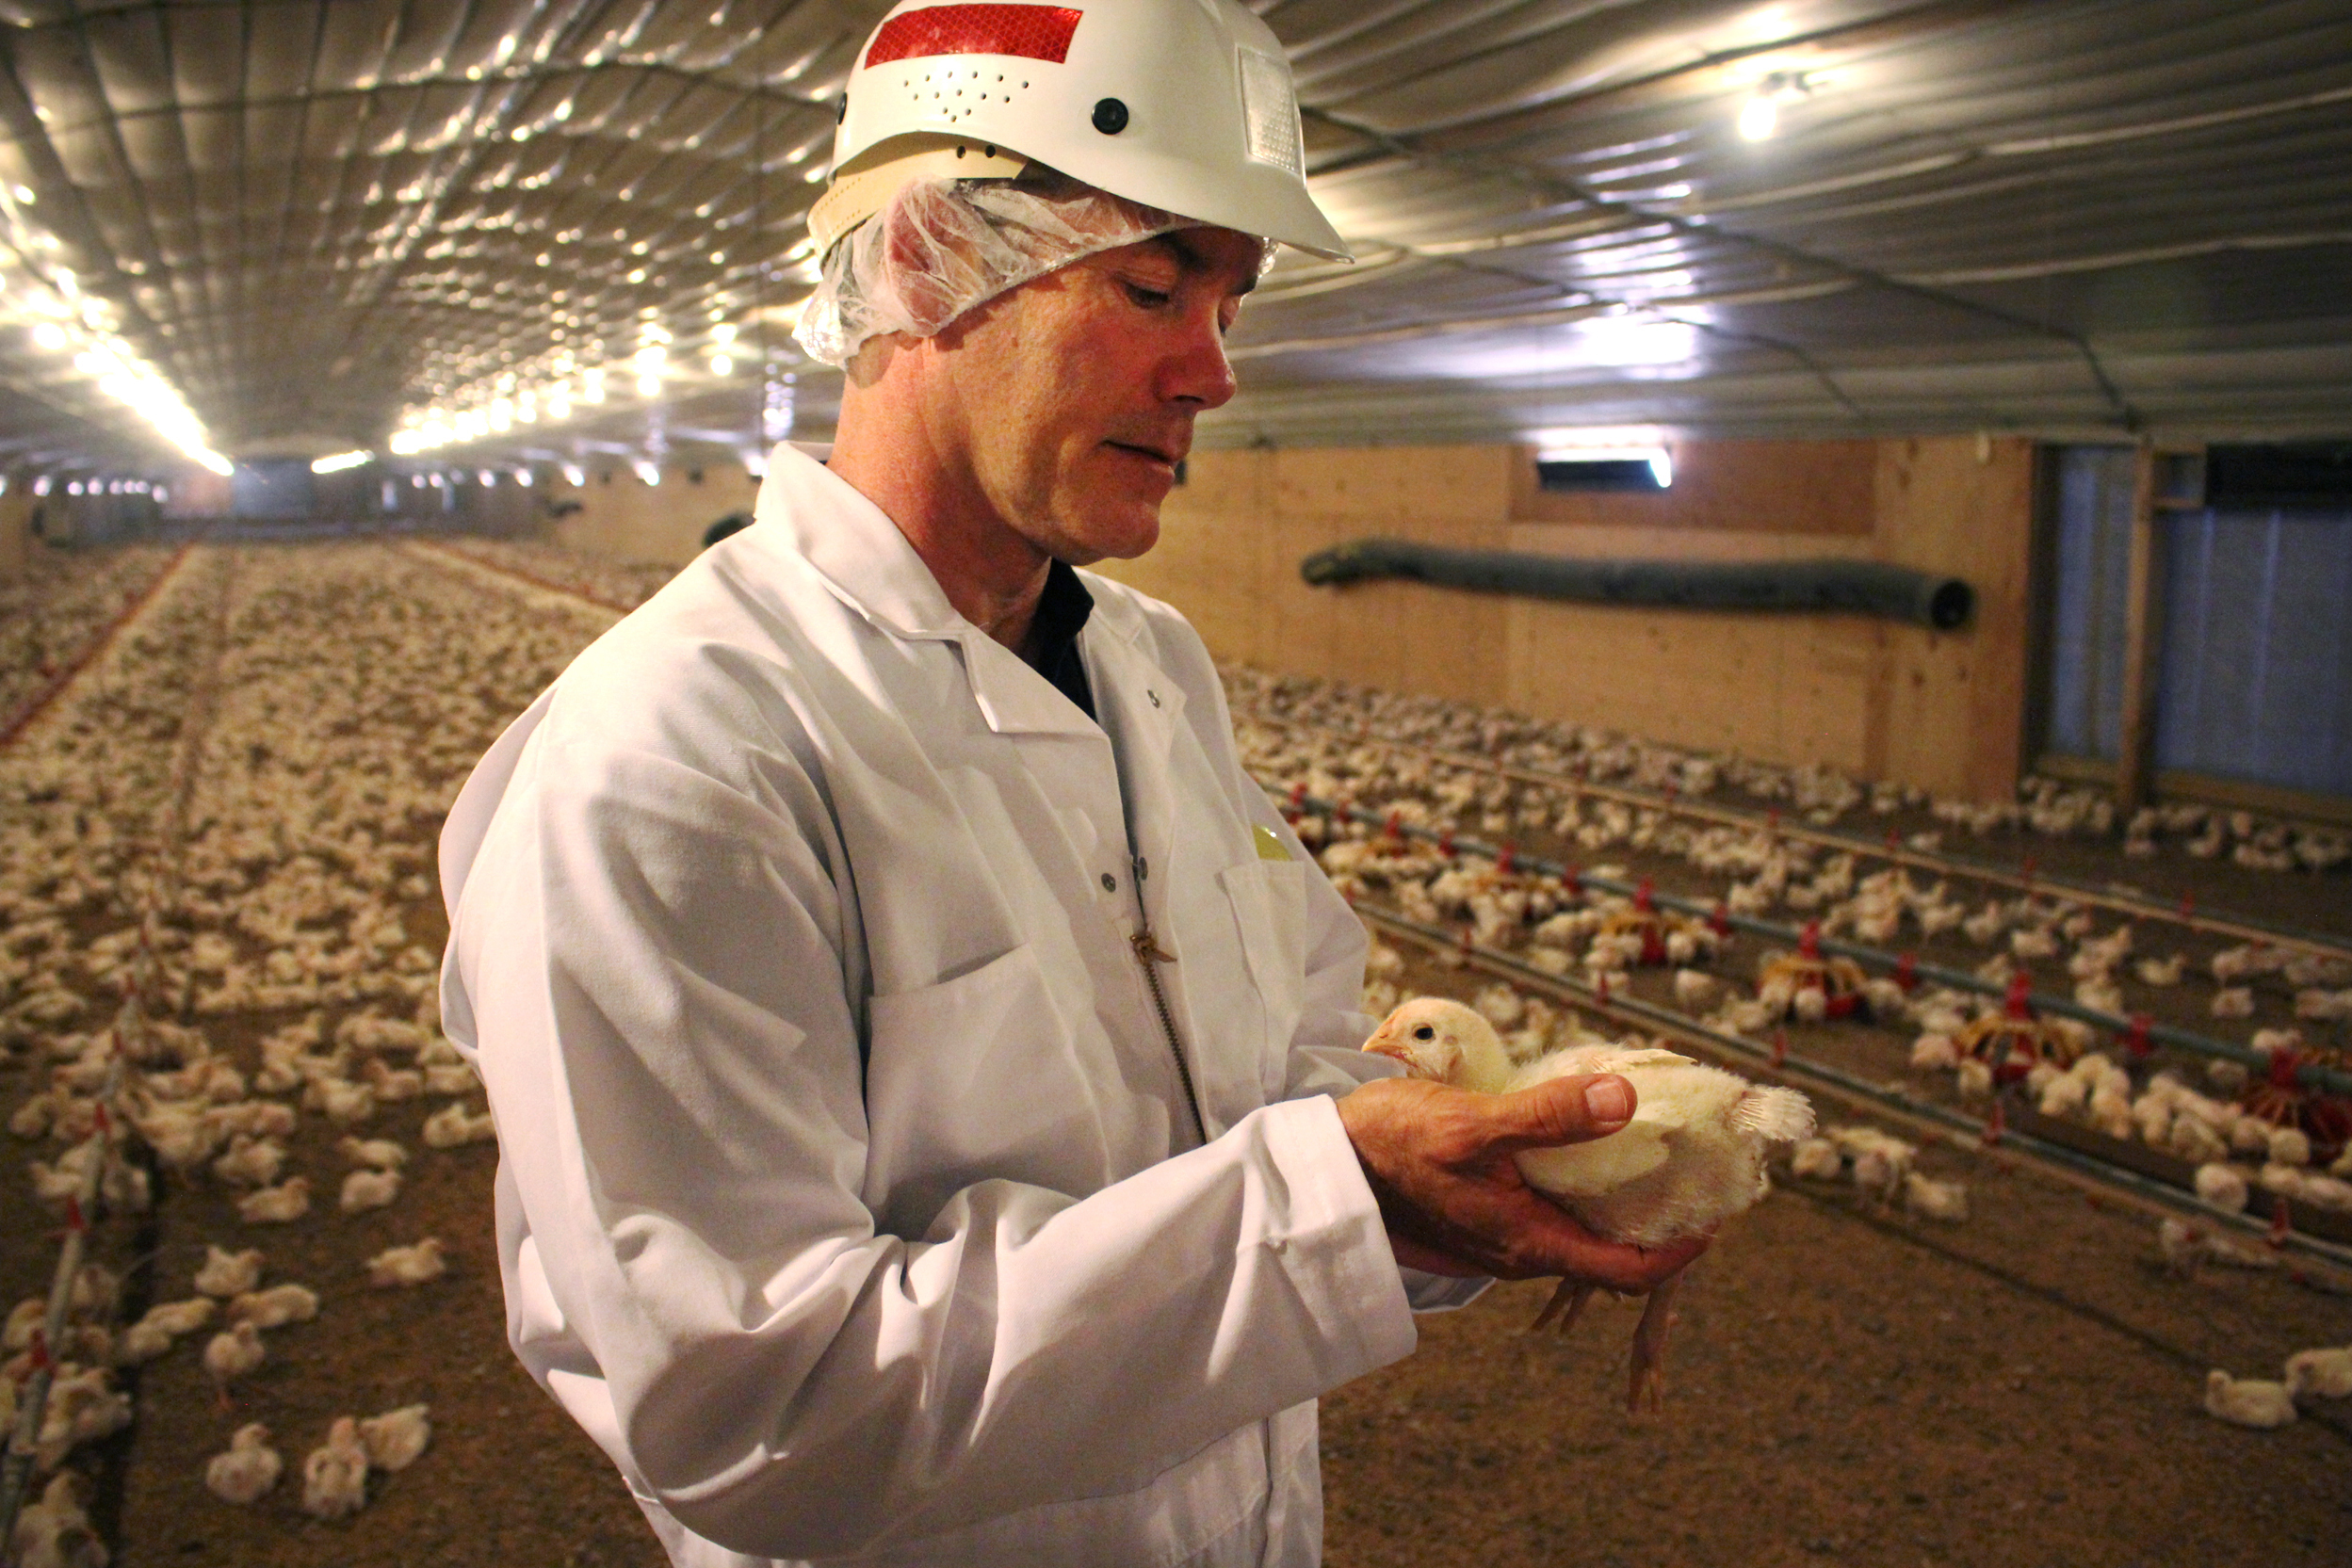 Bob O'Connor, a Foster Farms veterinarian, holds an 11-day-old chick at a ranch near the town of Merced, in California's Central Valley. Photo: Dan Charles/NPR